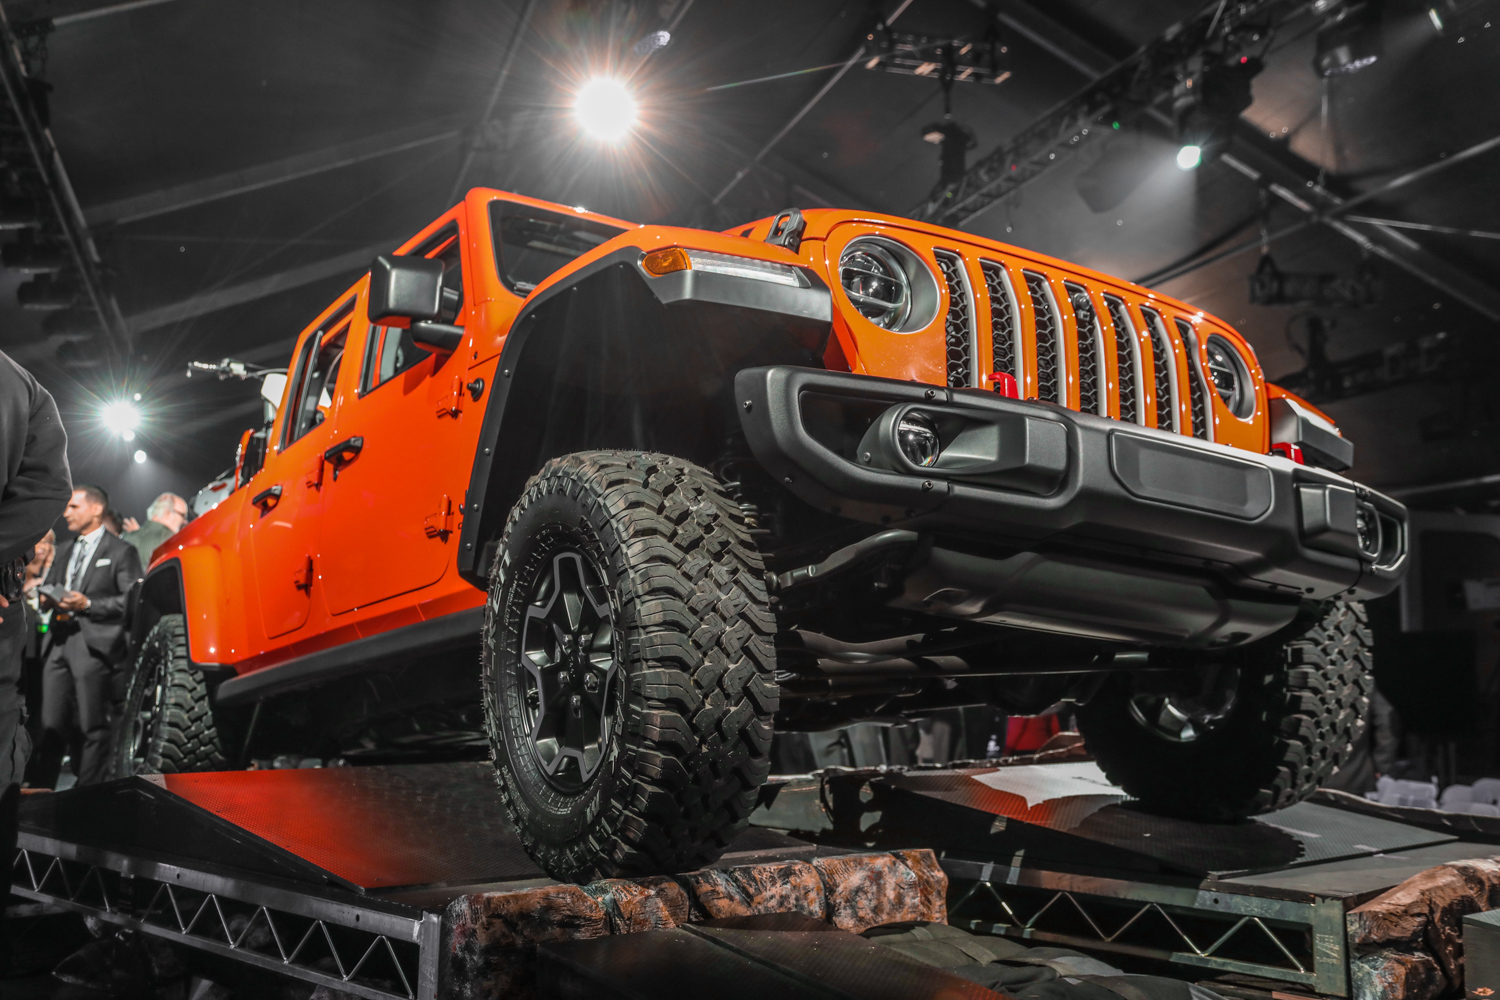 2020 Jeep Gladiator rock crawling